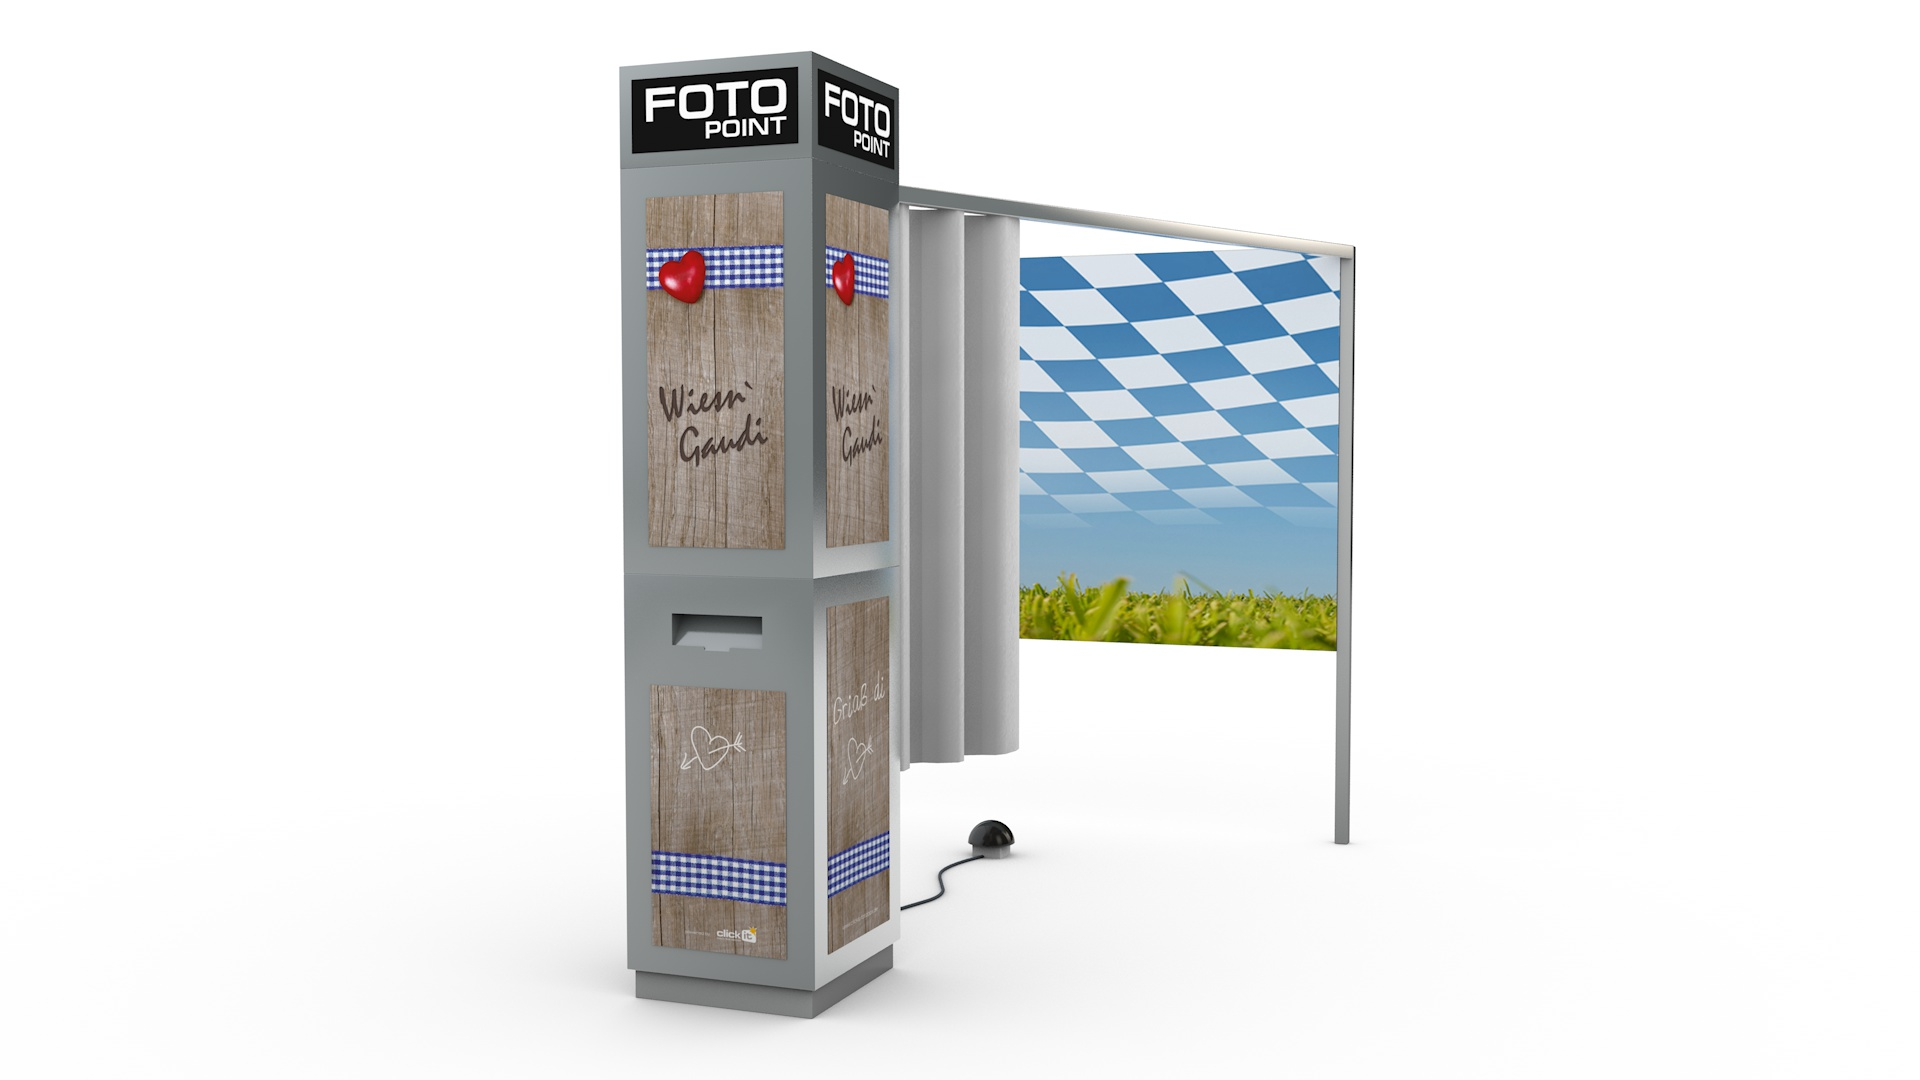 Fotobox Oktoberfest Edition